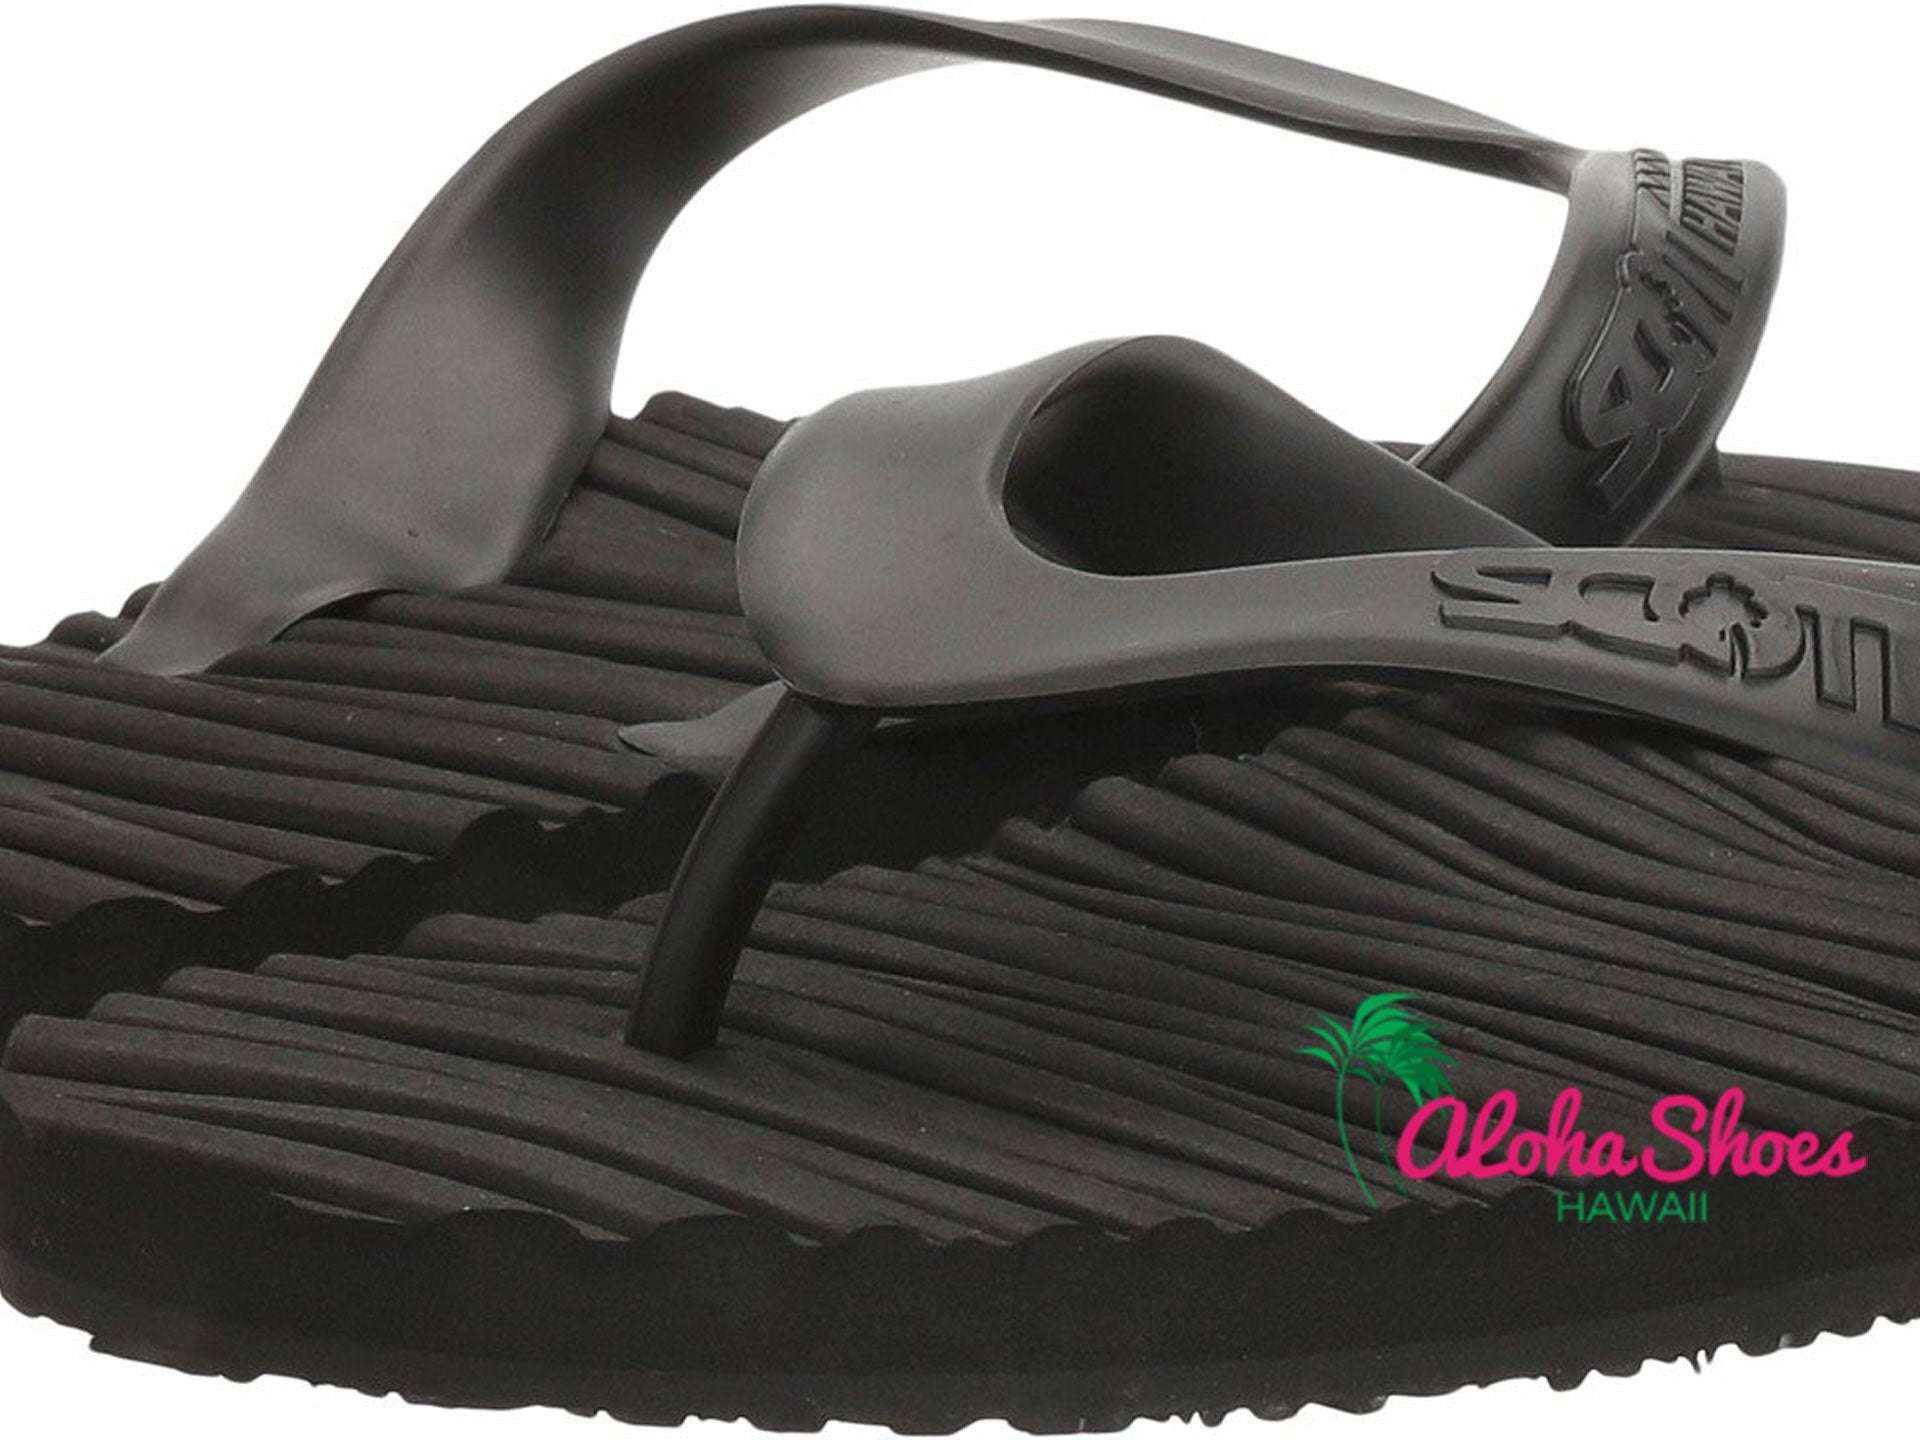 Scott Hawaii Pahoehoe Black Lava Design Rubber Slipper- AlohaShoes.com